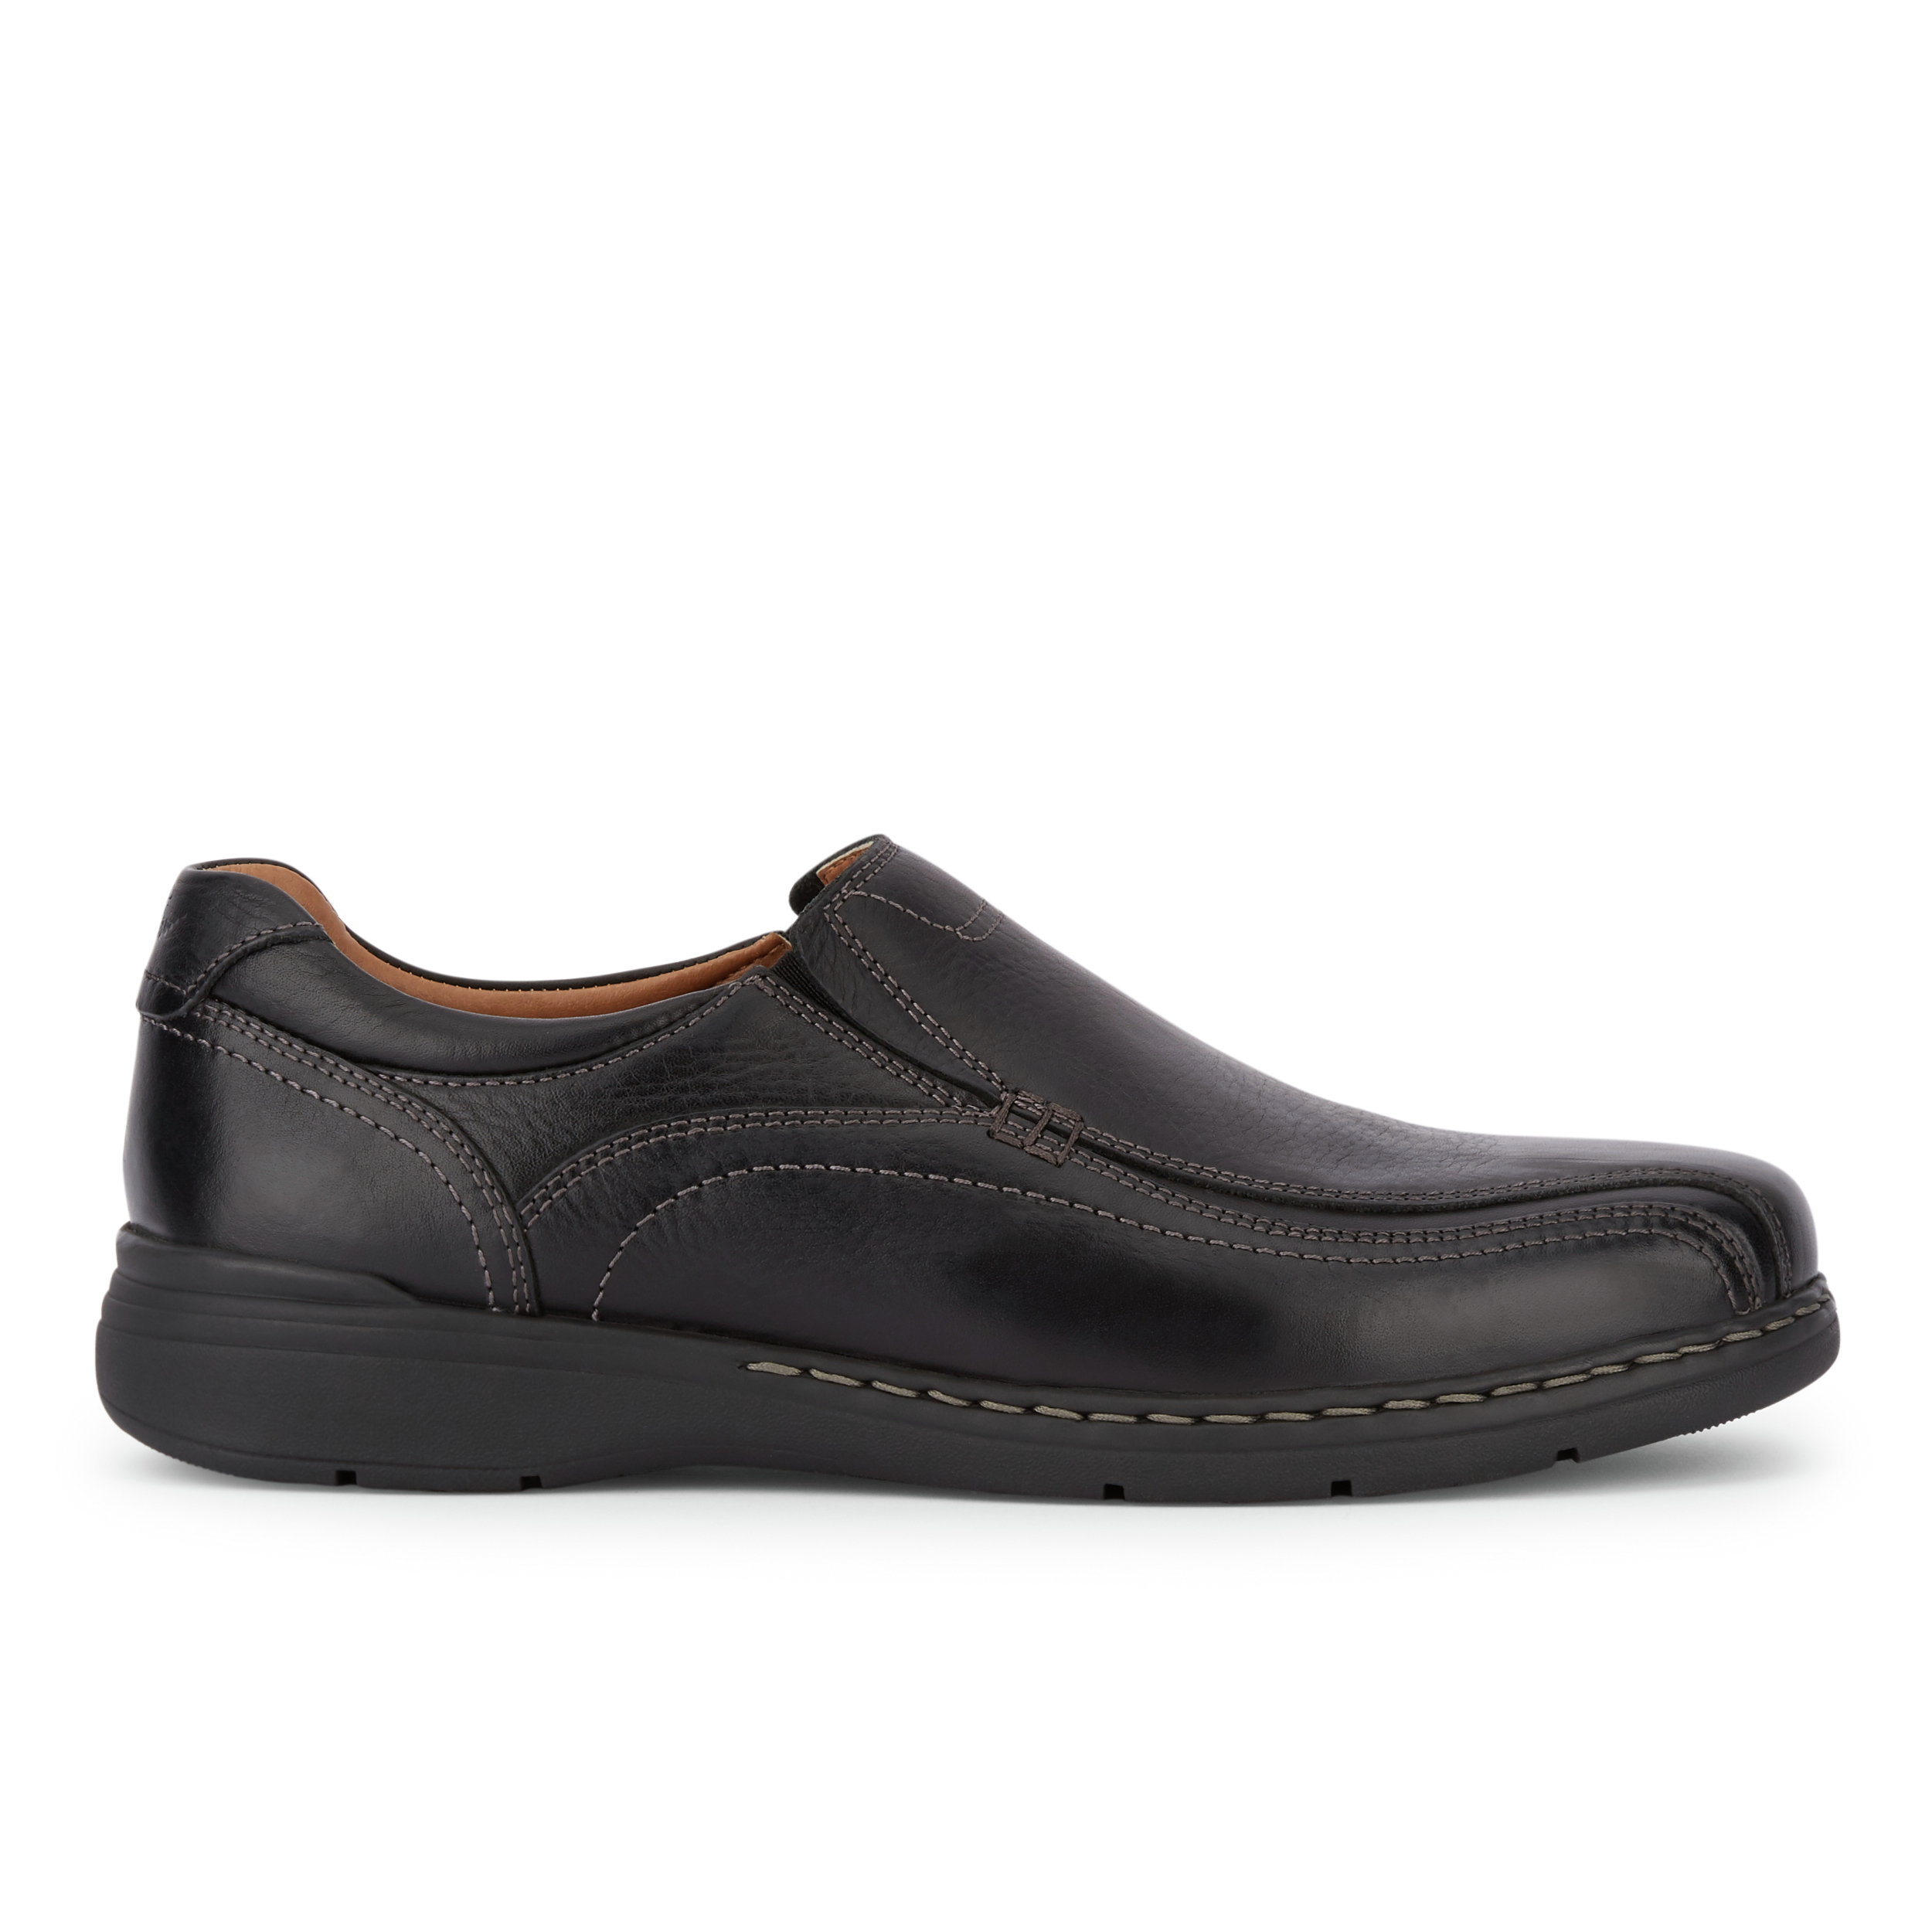 Dockers-Mens-Mosley-Genuine-Leather-Dress-Casual-Slip-on-Rubber-Sole-Shoe thumbnail 12